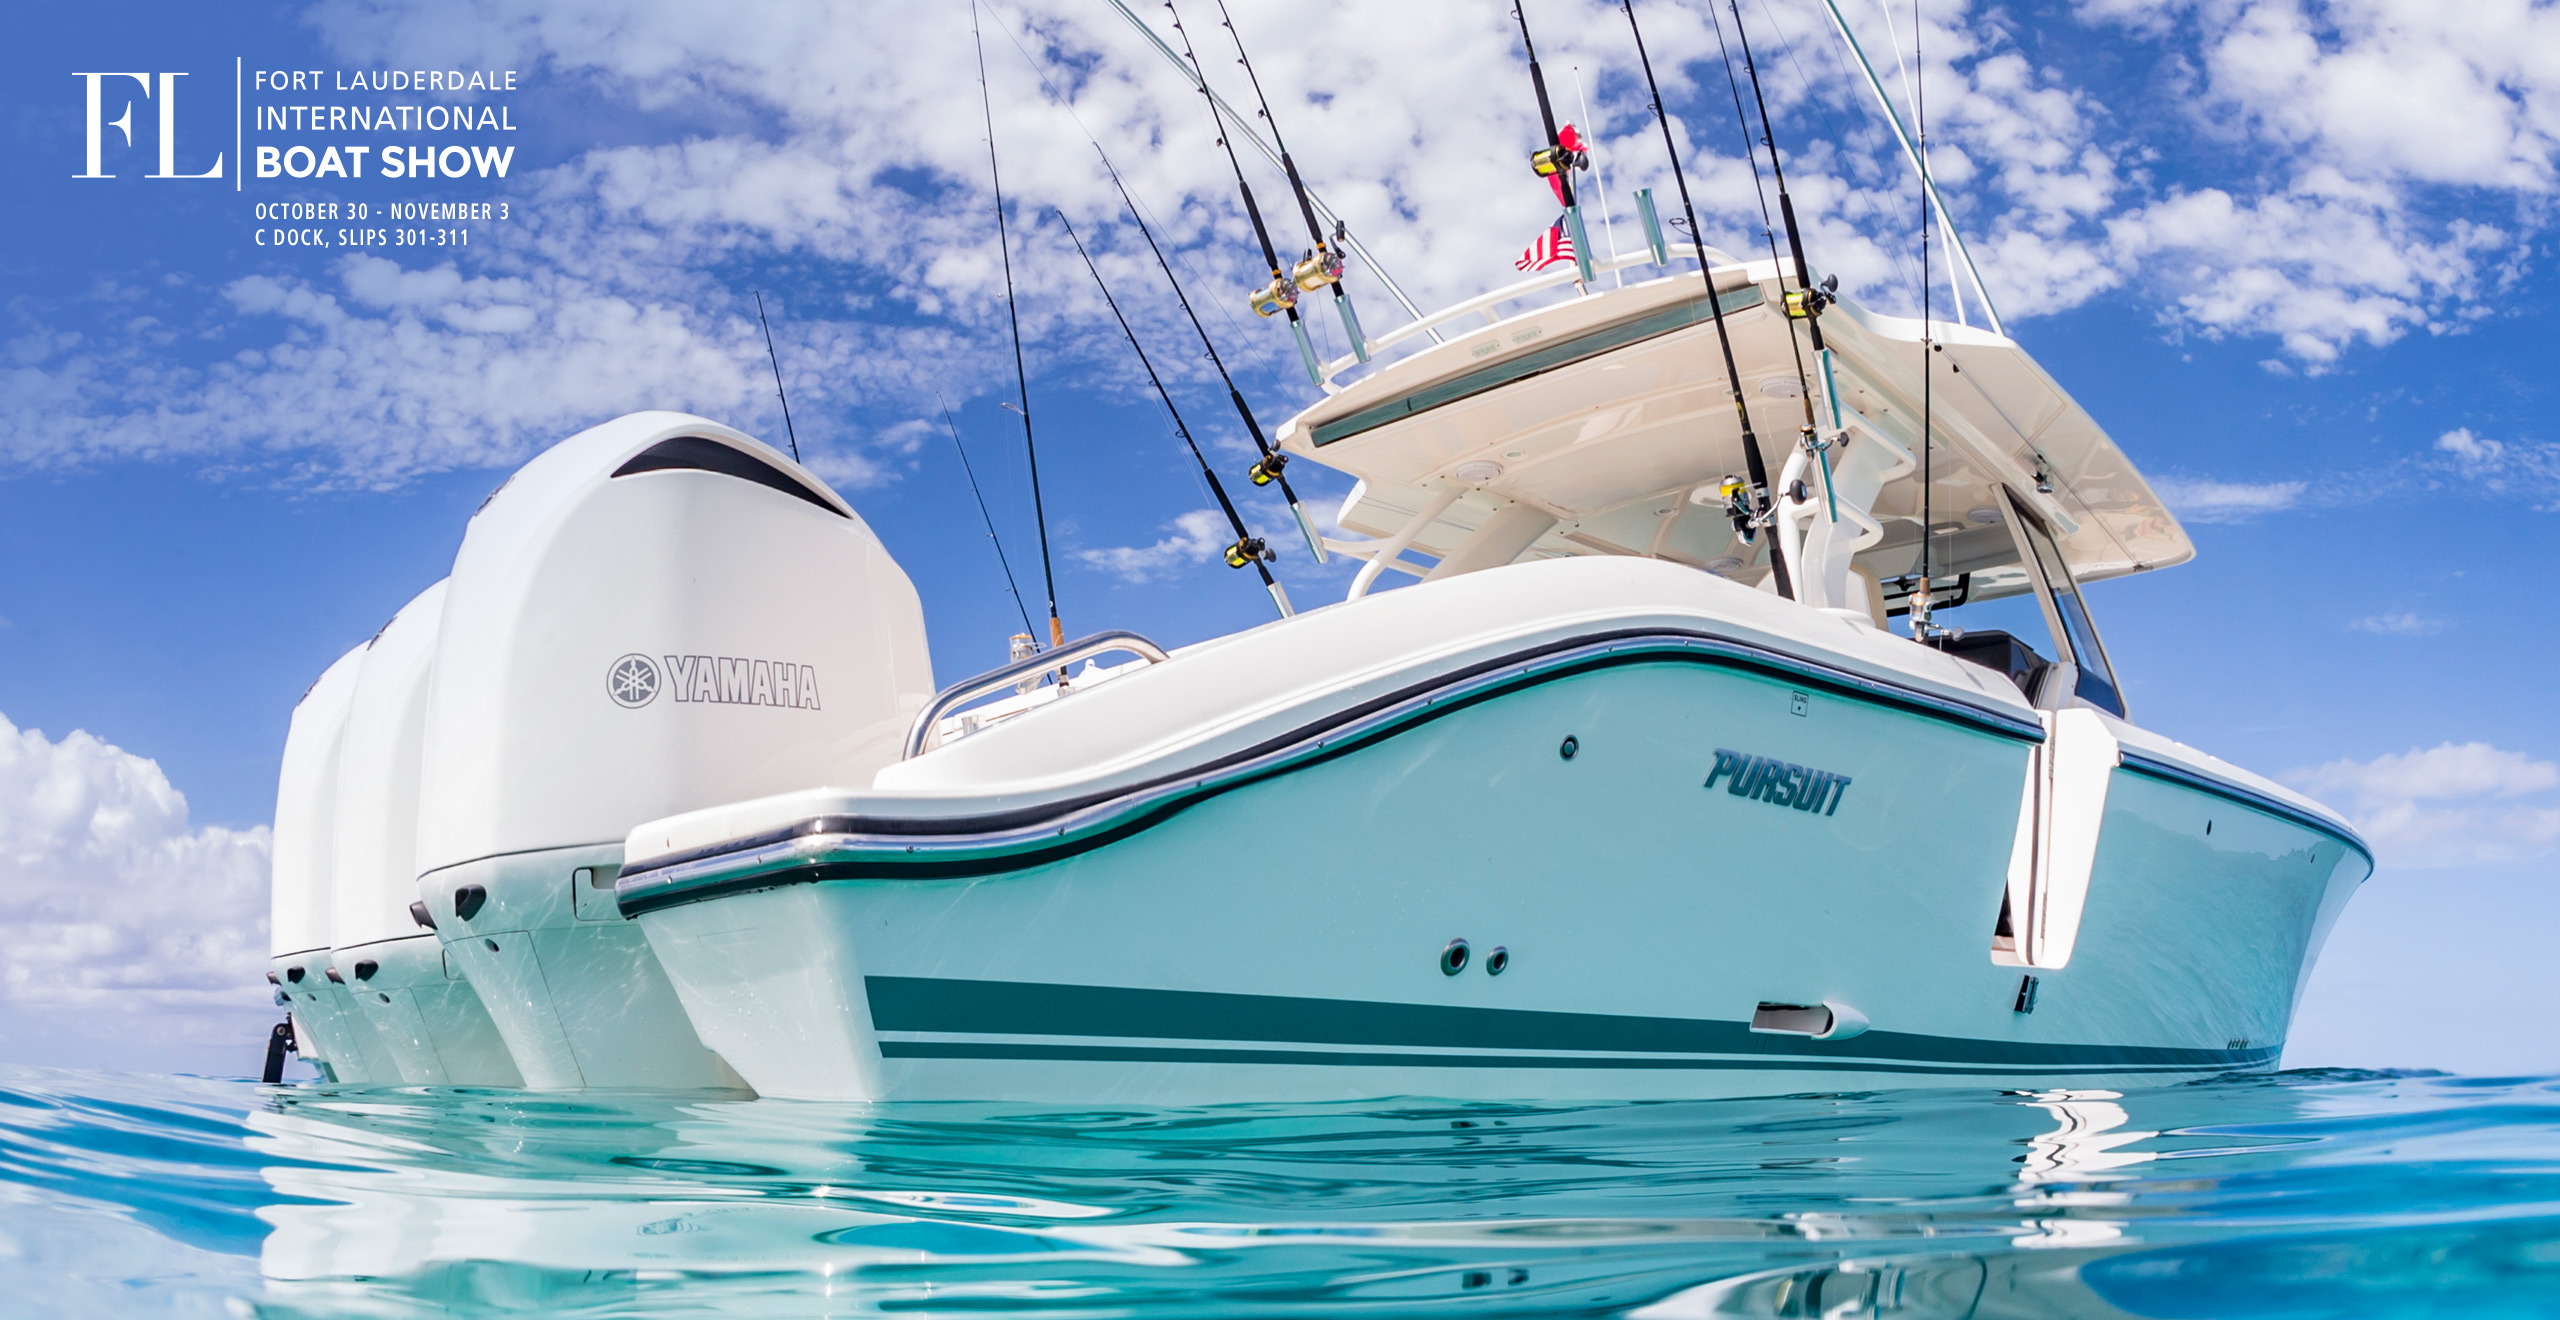 JOIN US AT THE FORT LAUDERDALE INTERNATIONAL BOAT SHOW